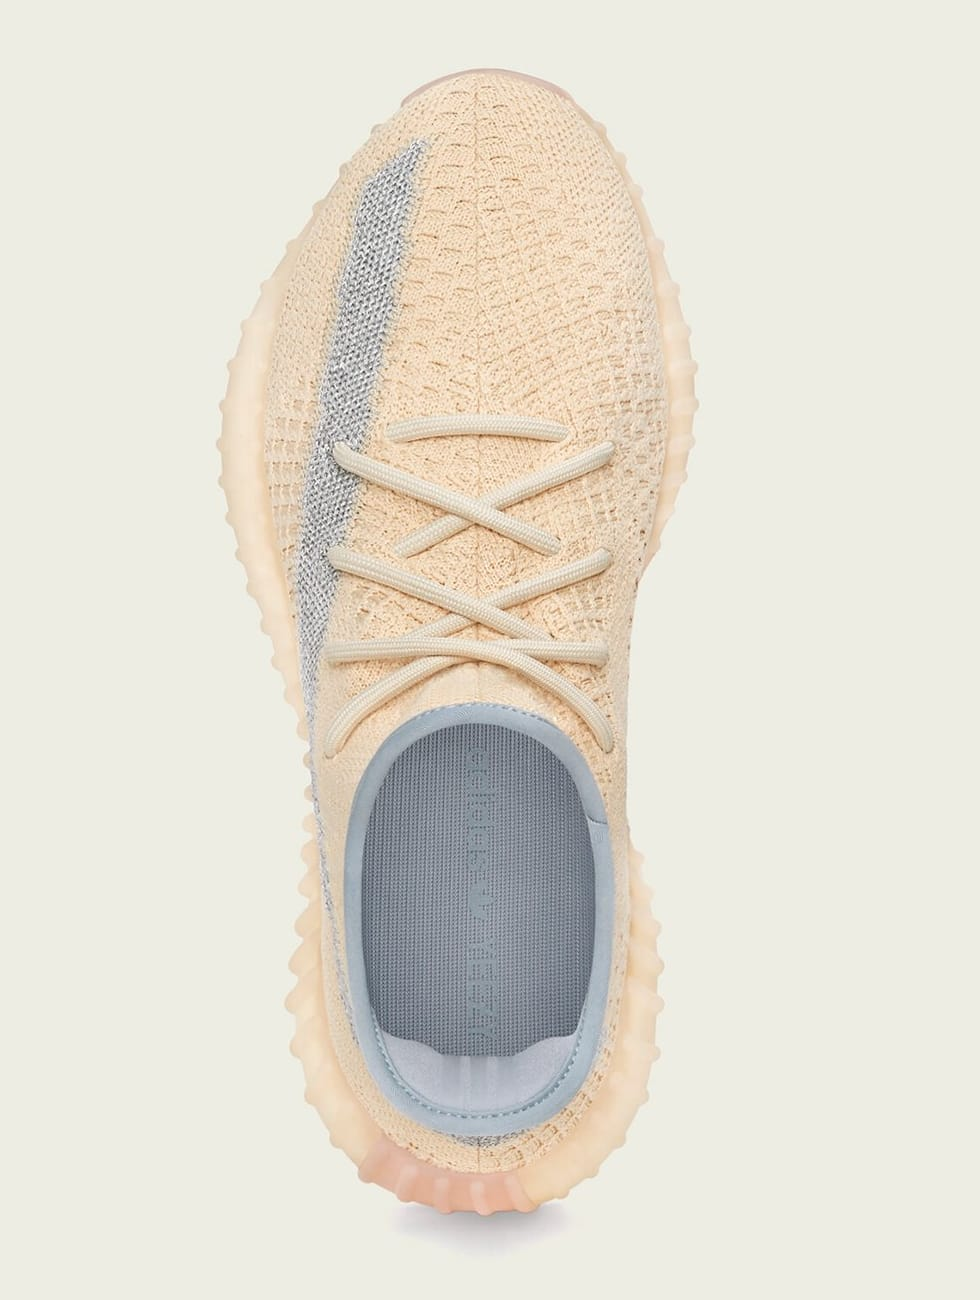 Adidas Yeezy Boost 350 V2 'Linen' FY5158 Top